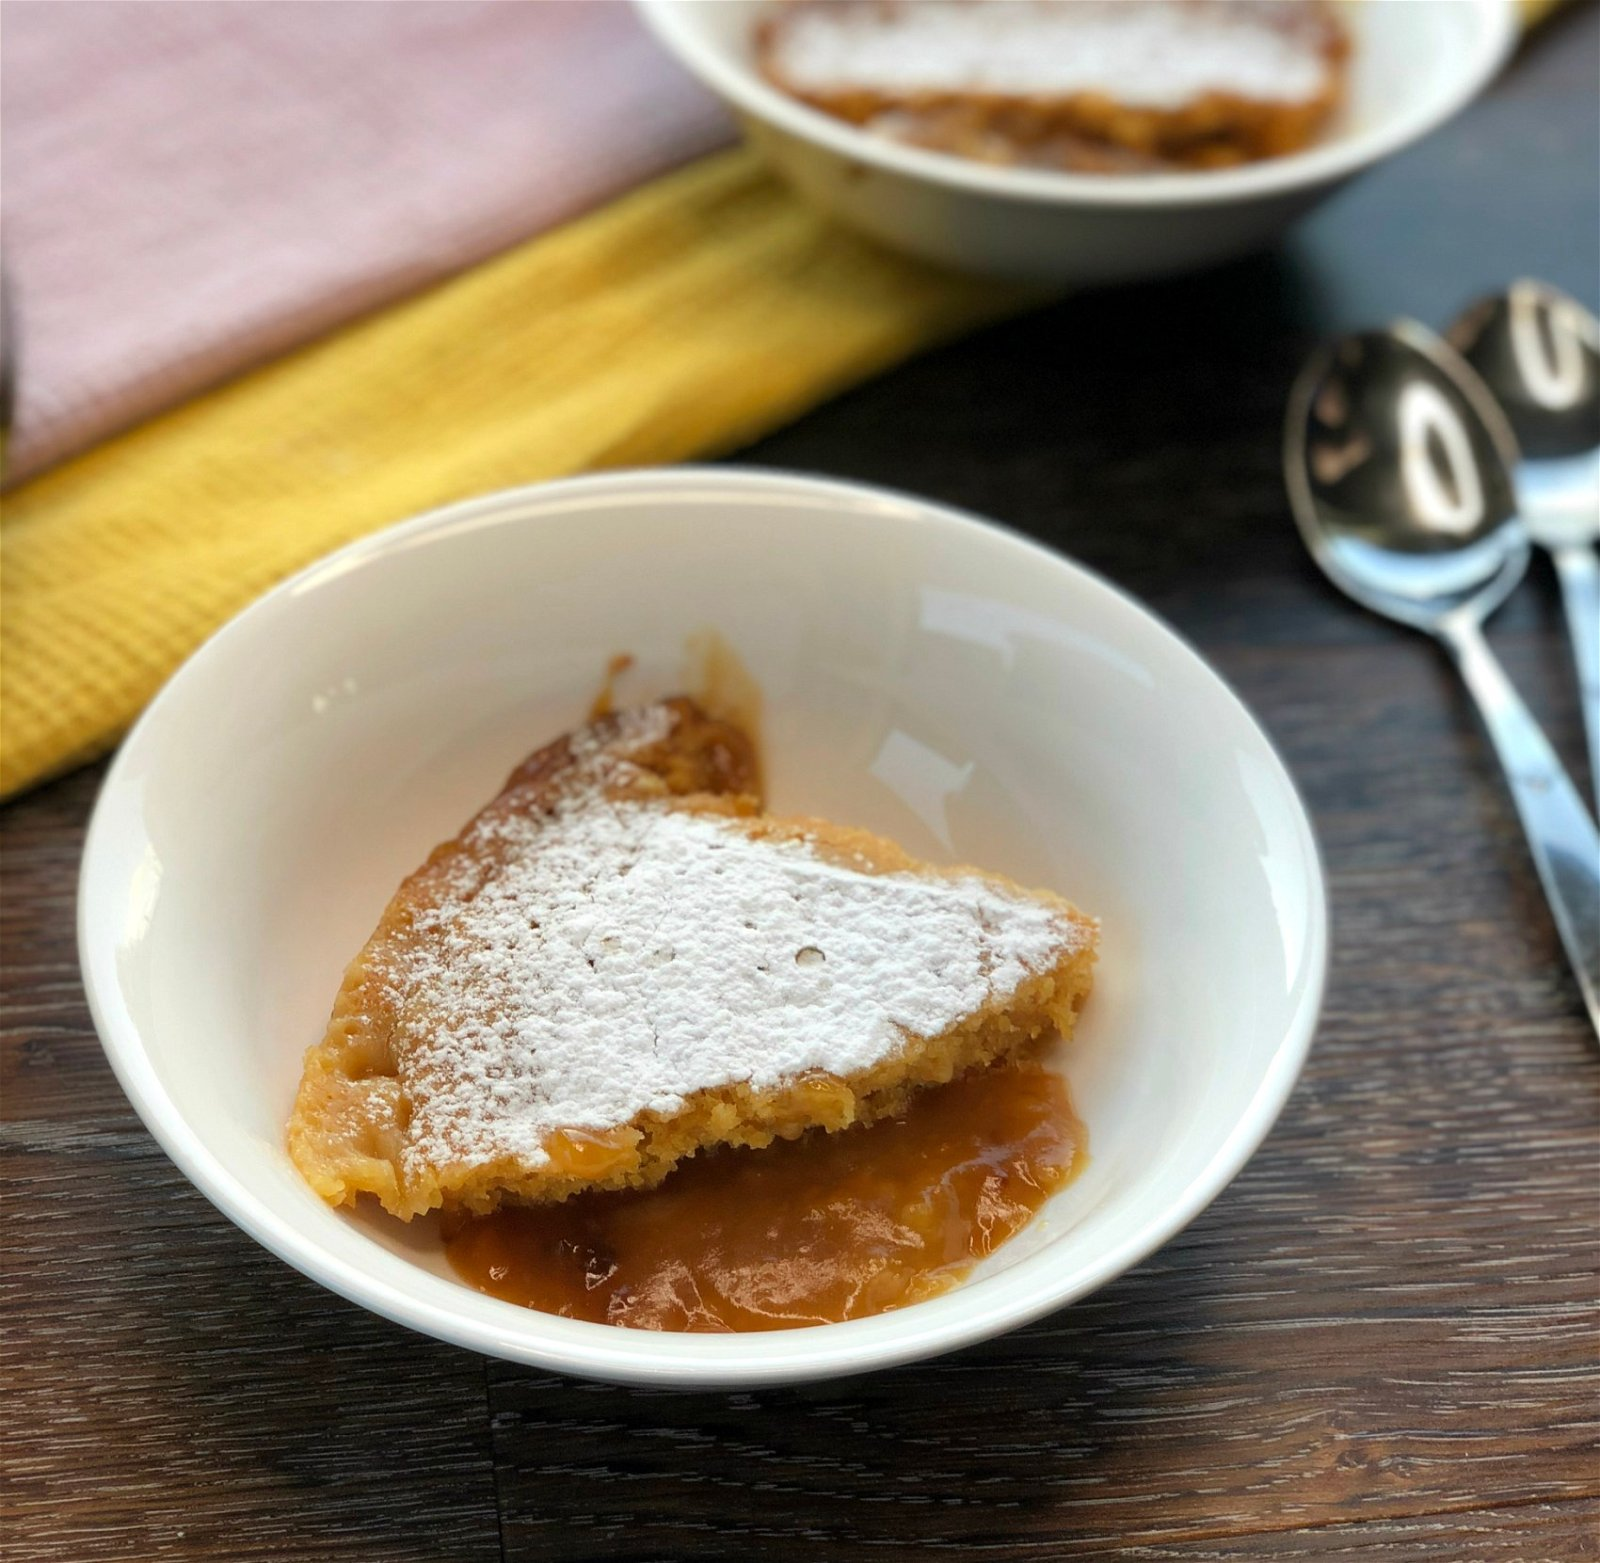 Serving of Butterscotch Self Saucing Pudding cooked in a crock pot